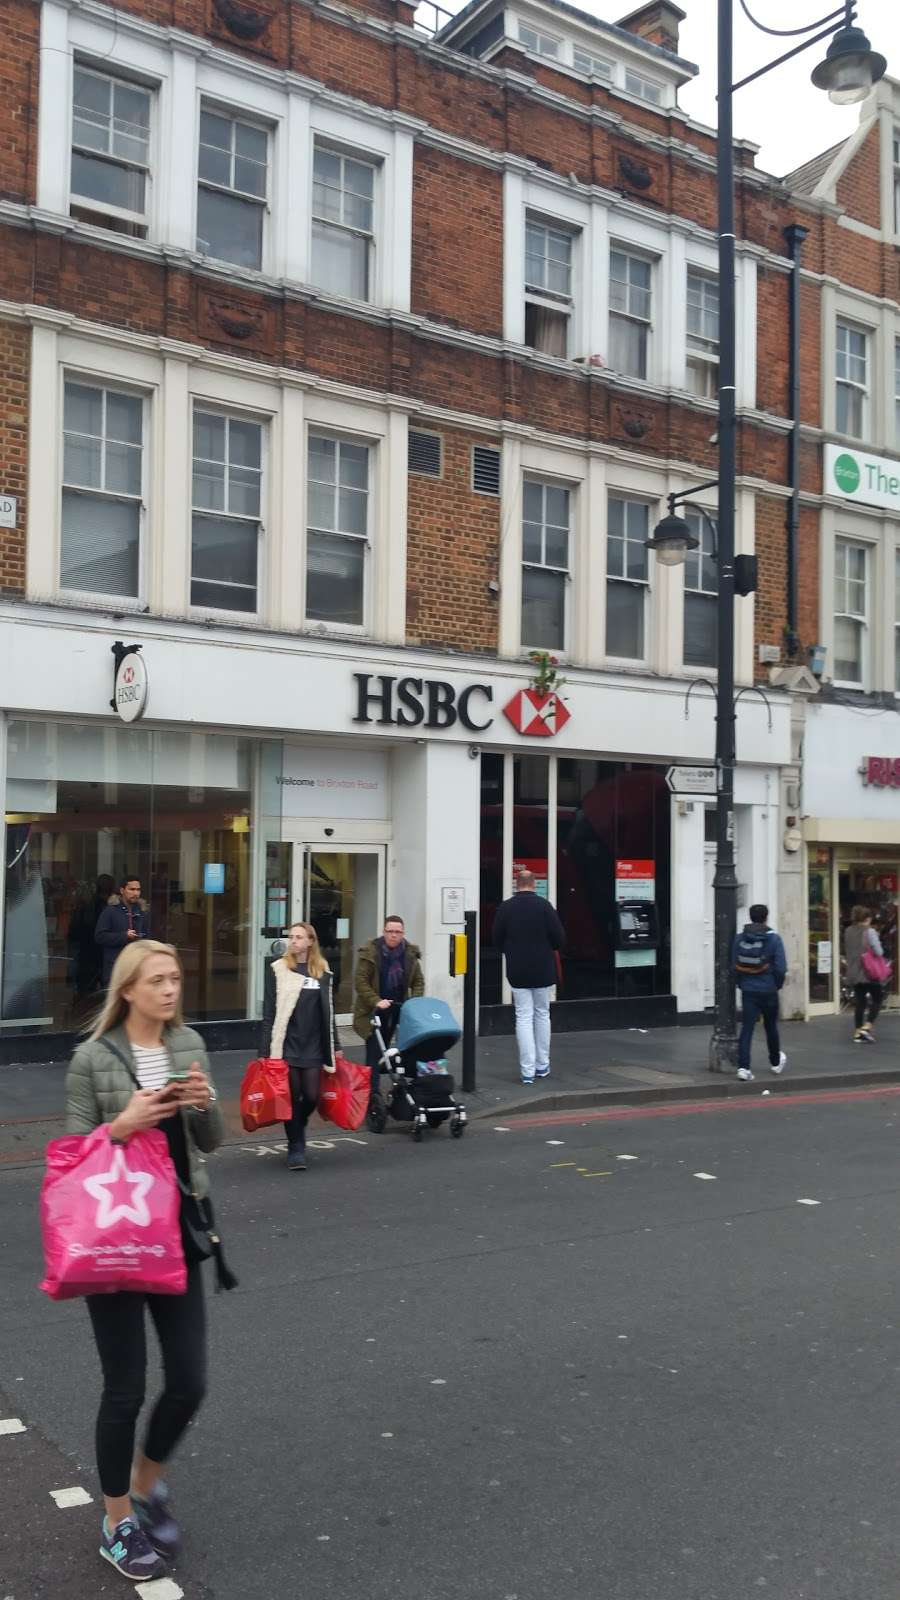 HSBC - Bank | 512 Brixton Rd, Brixton, London SW9 8ER, UK